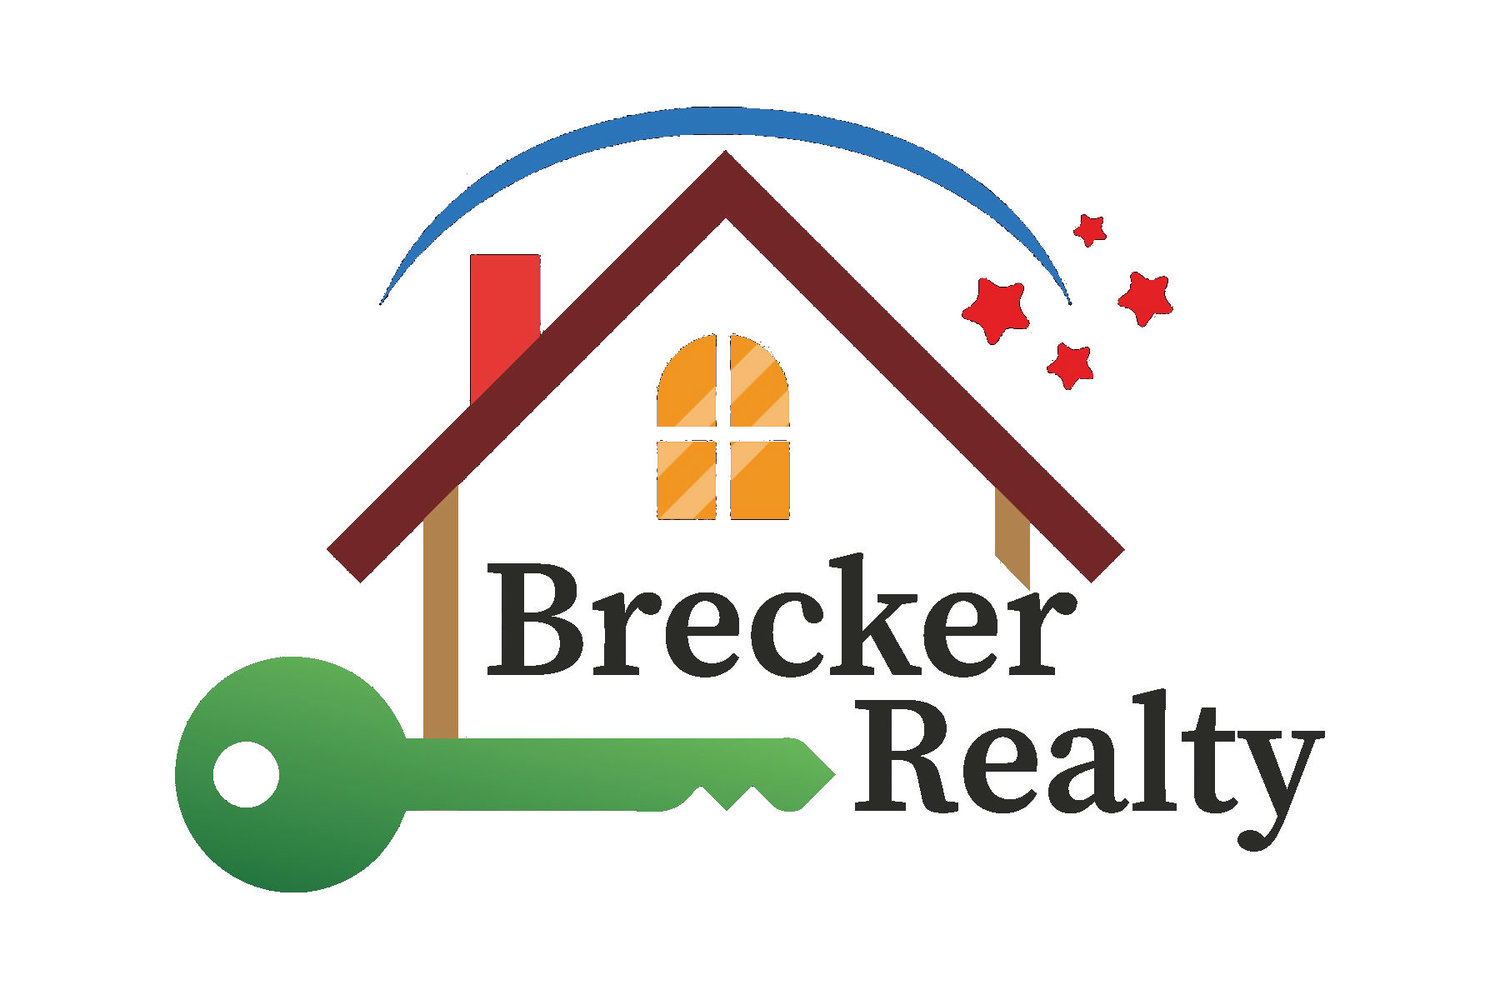 Brecker Realty